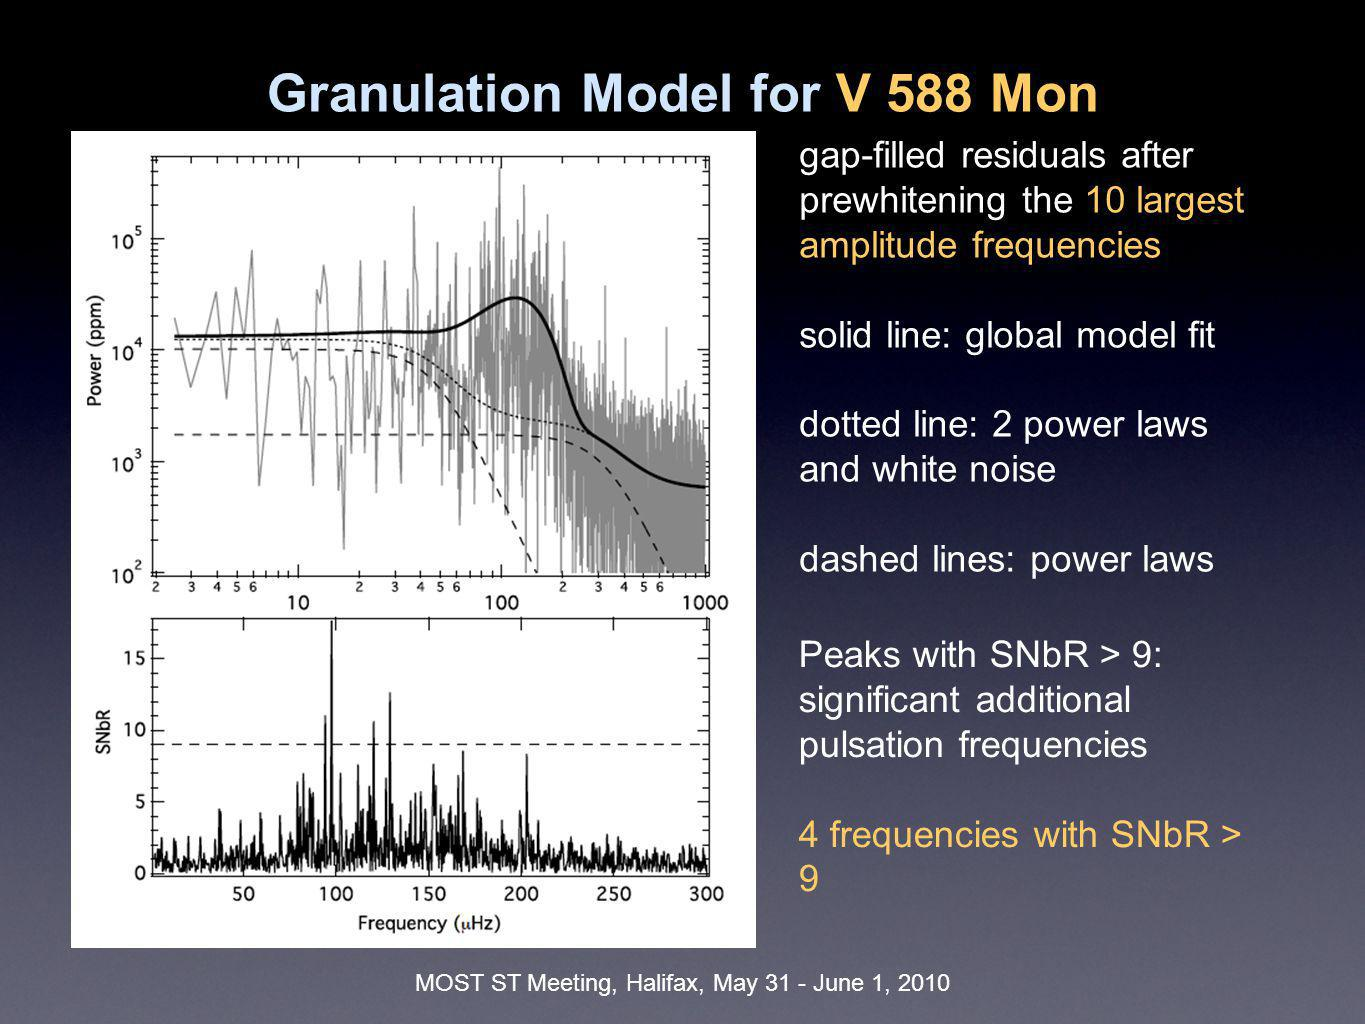 MOST ST Meeting, Halifax, May 31 - June 1, 2010 Granulation Model for V 589 Mon gap-filled residuals after prewhitening the 15 largest amplitude frequencies 22 frequencies with SNbR>9